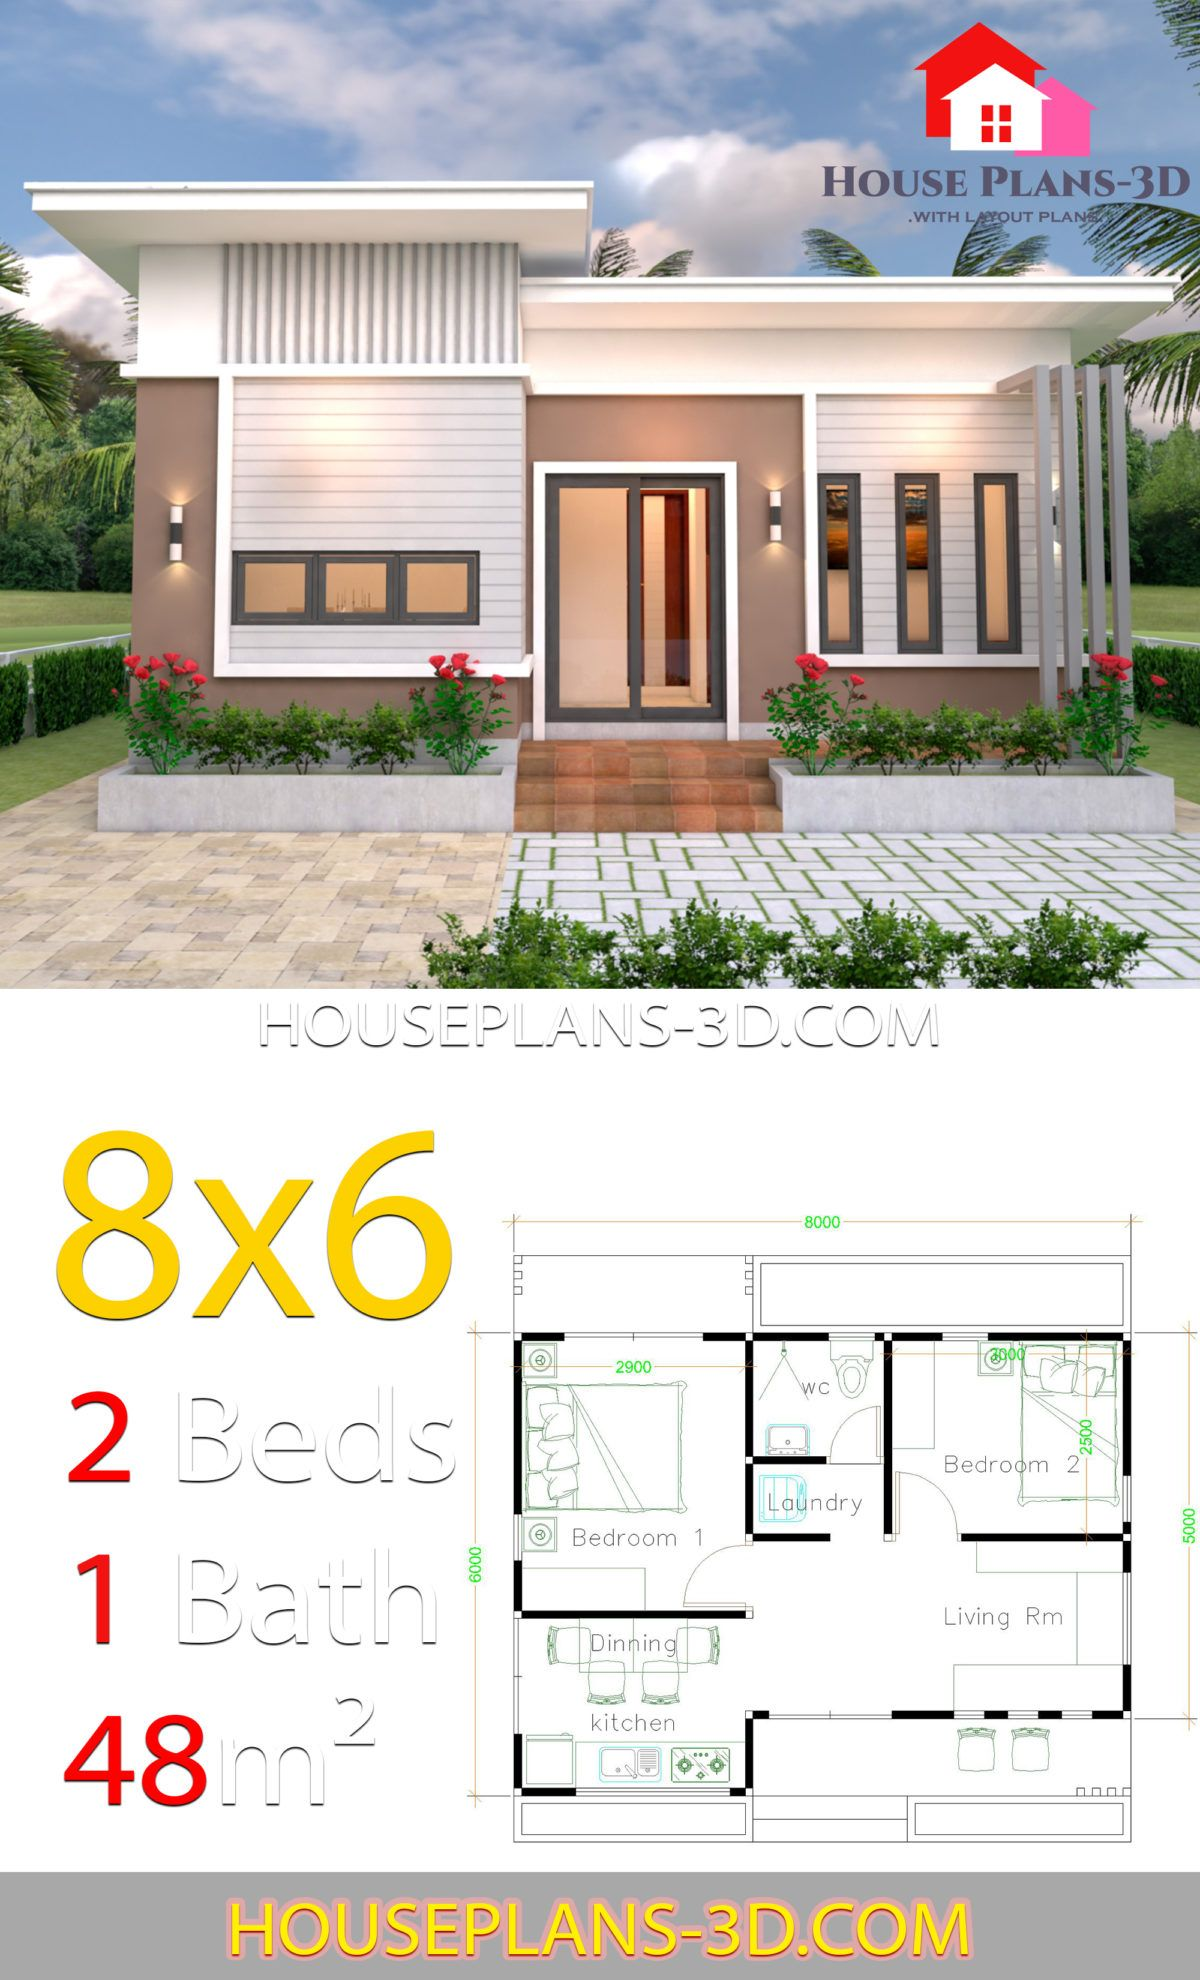 House Plans 8x6 With 2 Bedrooms Slope Roof House Plans 3d Arsitektur Rumah Indah Arsitektur Rumah